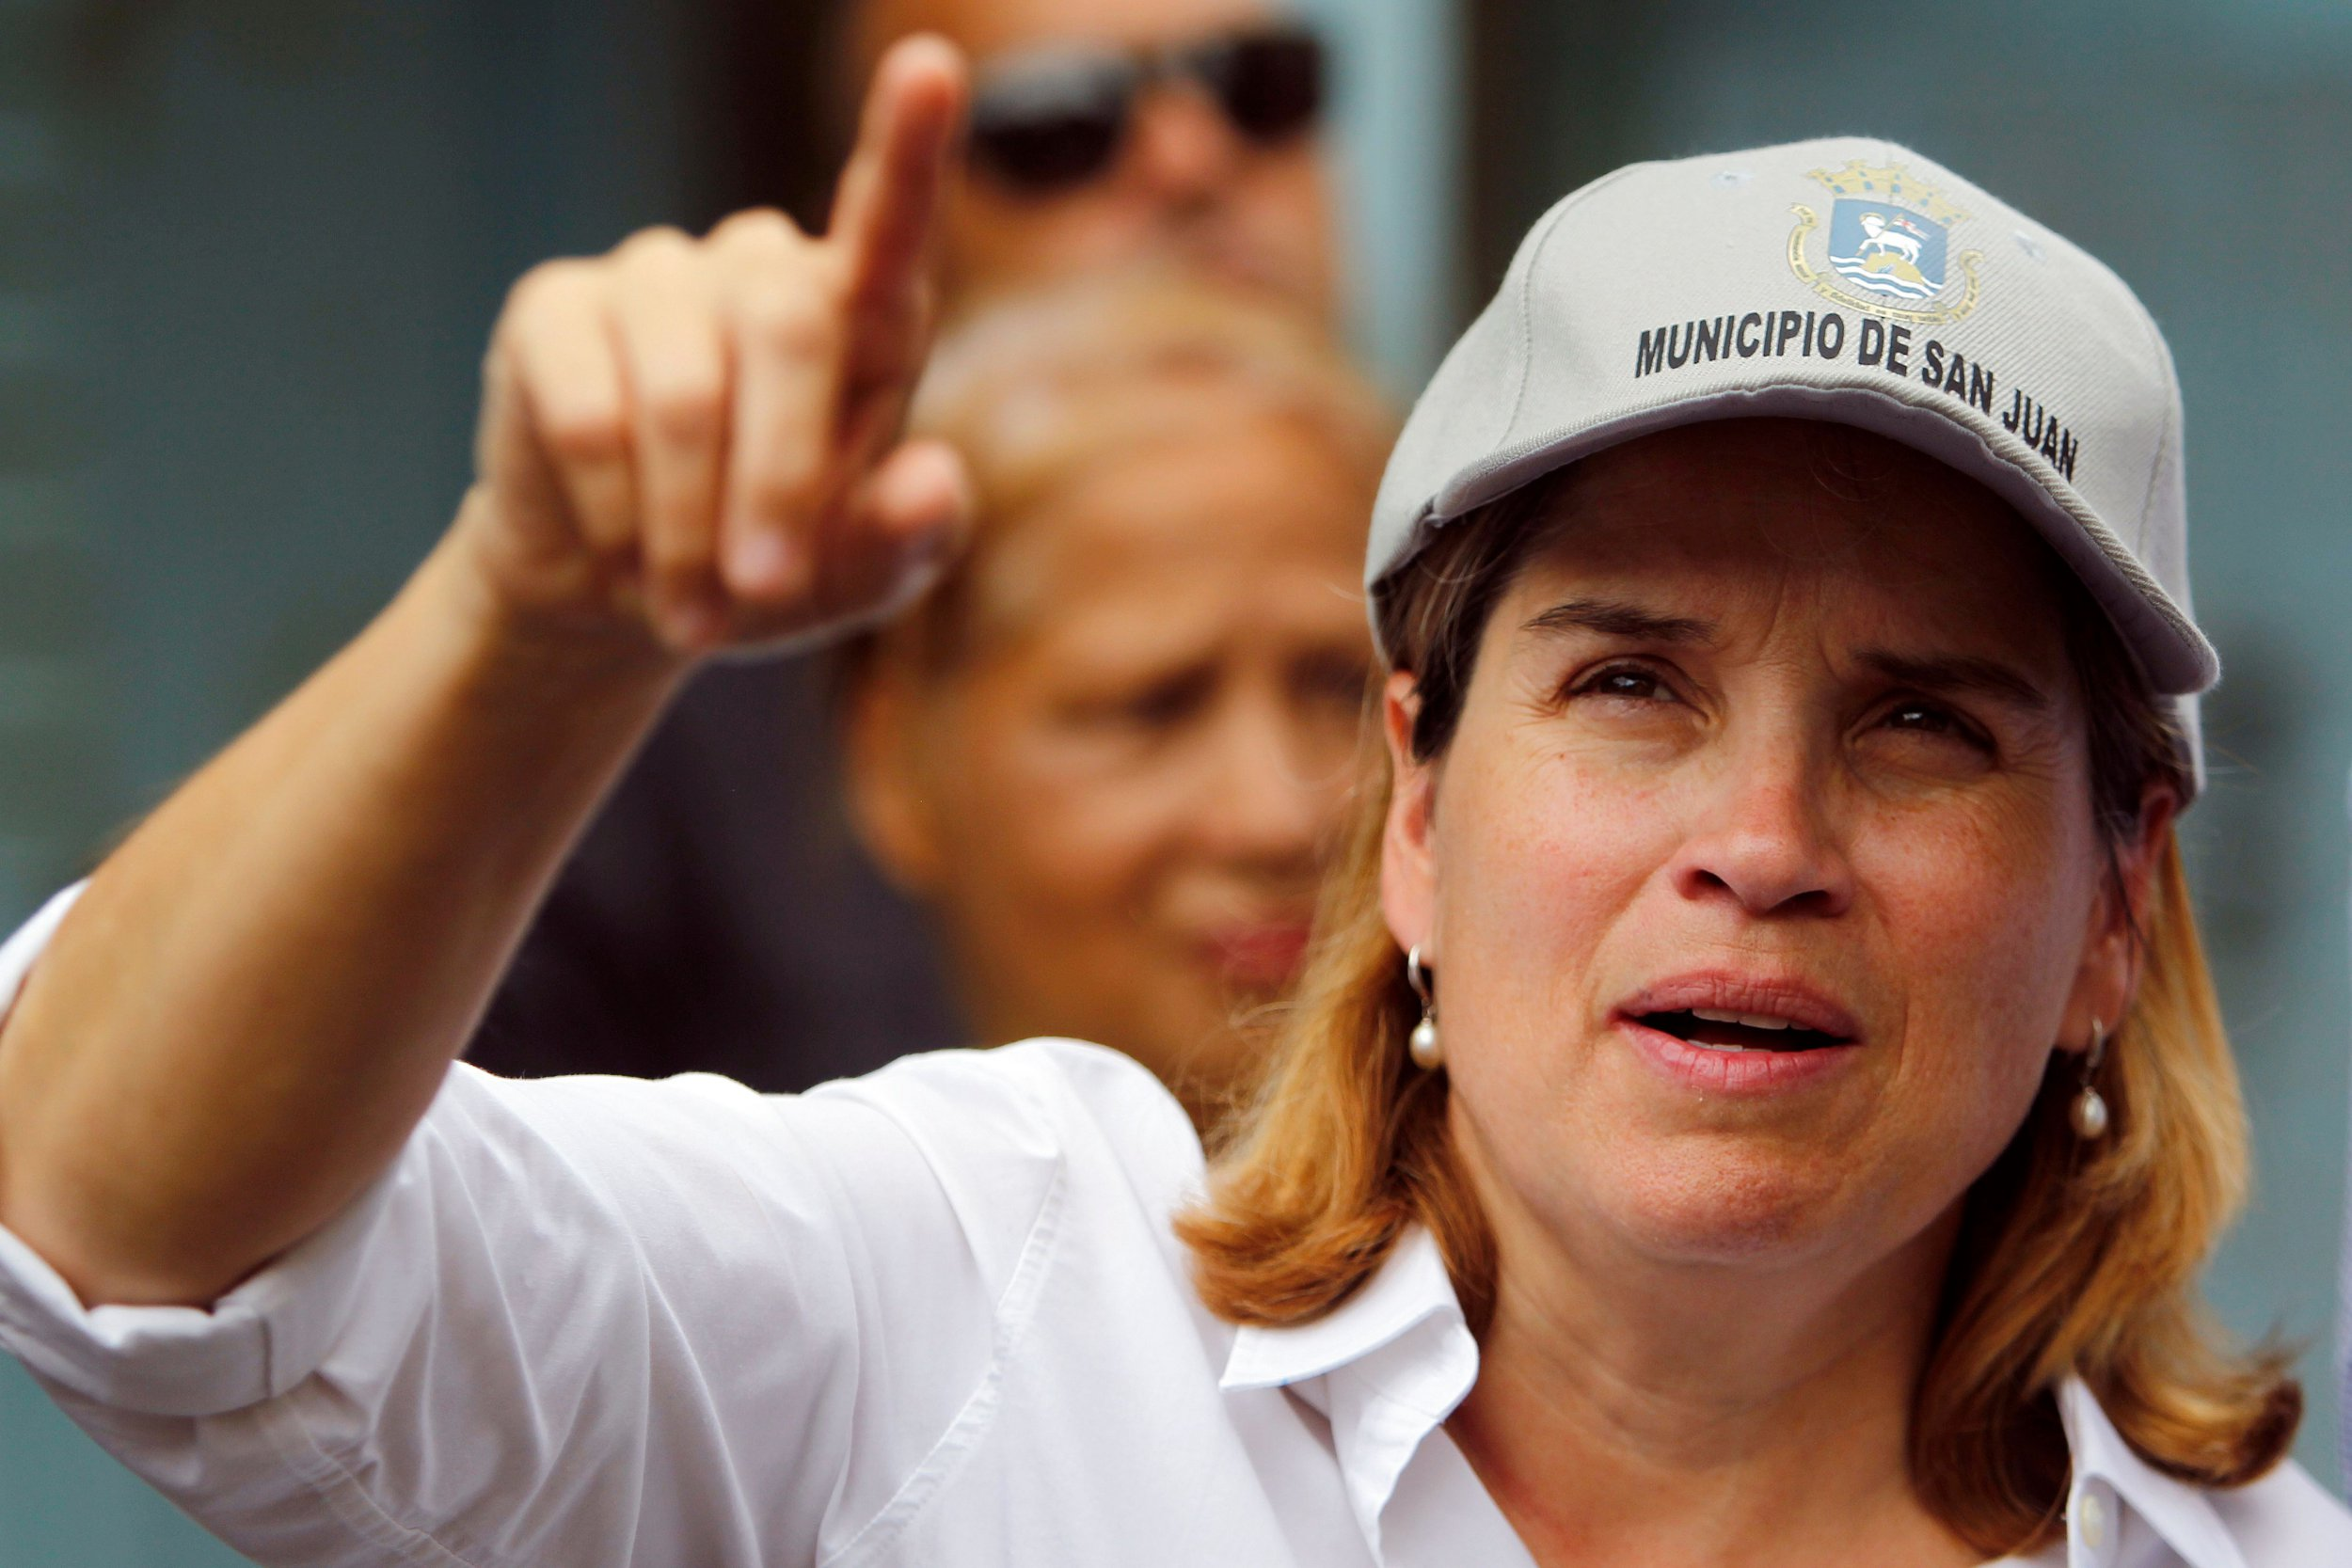 """(FILES) In this file photo taken on October 27, 2017 The Mayor of San Juan, Carmen Yulin Cruz points as she visits the Playita community with US Senator Bernie Sanders in San Juan, Puerto Rico. - US President Donald Trump's administration killed Puerto Ricans through """"neglect,"""" the mayor of the island's capital, Yulin Cruz, said on August 29, 2018, a day after the official death toll for Hurricane Maria was raised to nearly 3,000. (Photo by Ricardo ARDUENGO / AFP)RICARDO ARDUENGO/AFP/Getty Images"""